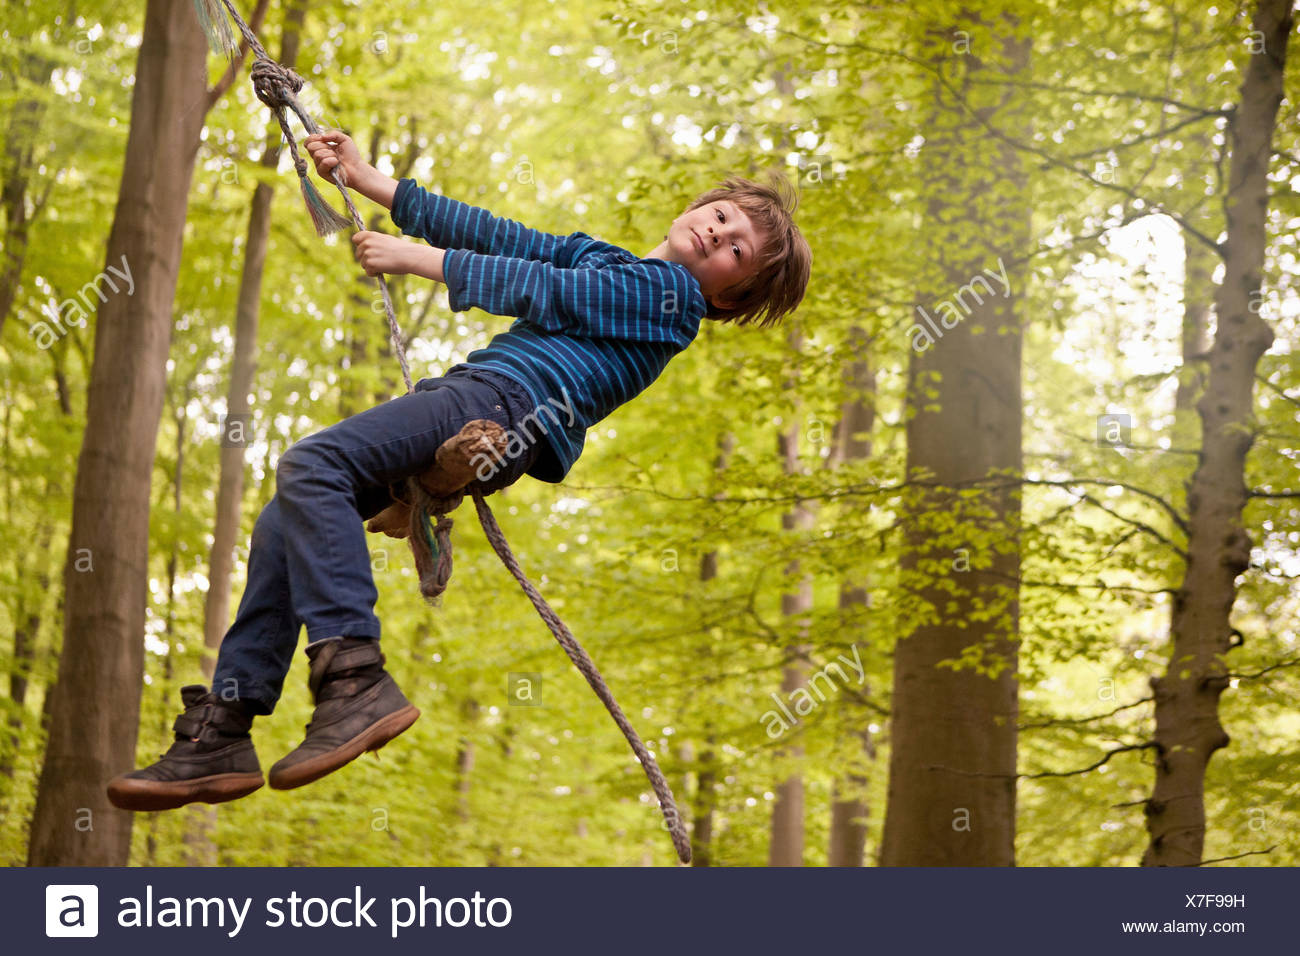 Boy swinging on rope in forest - Stock Image